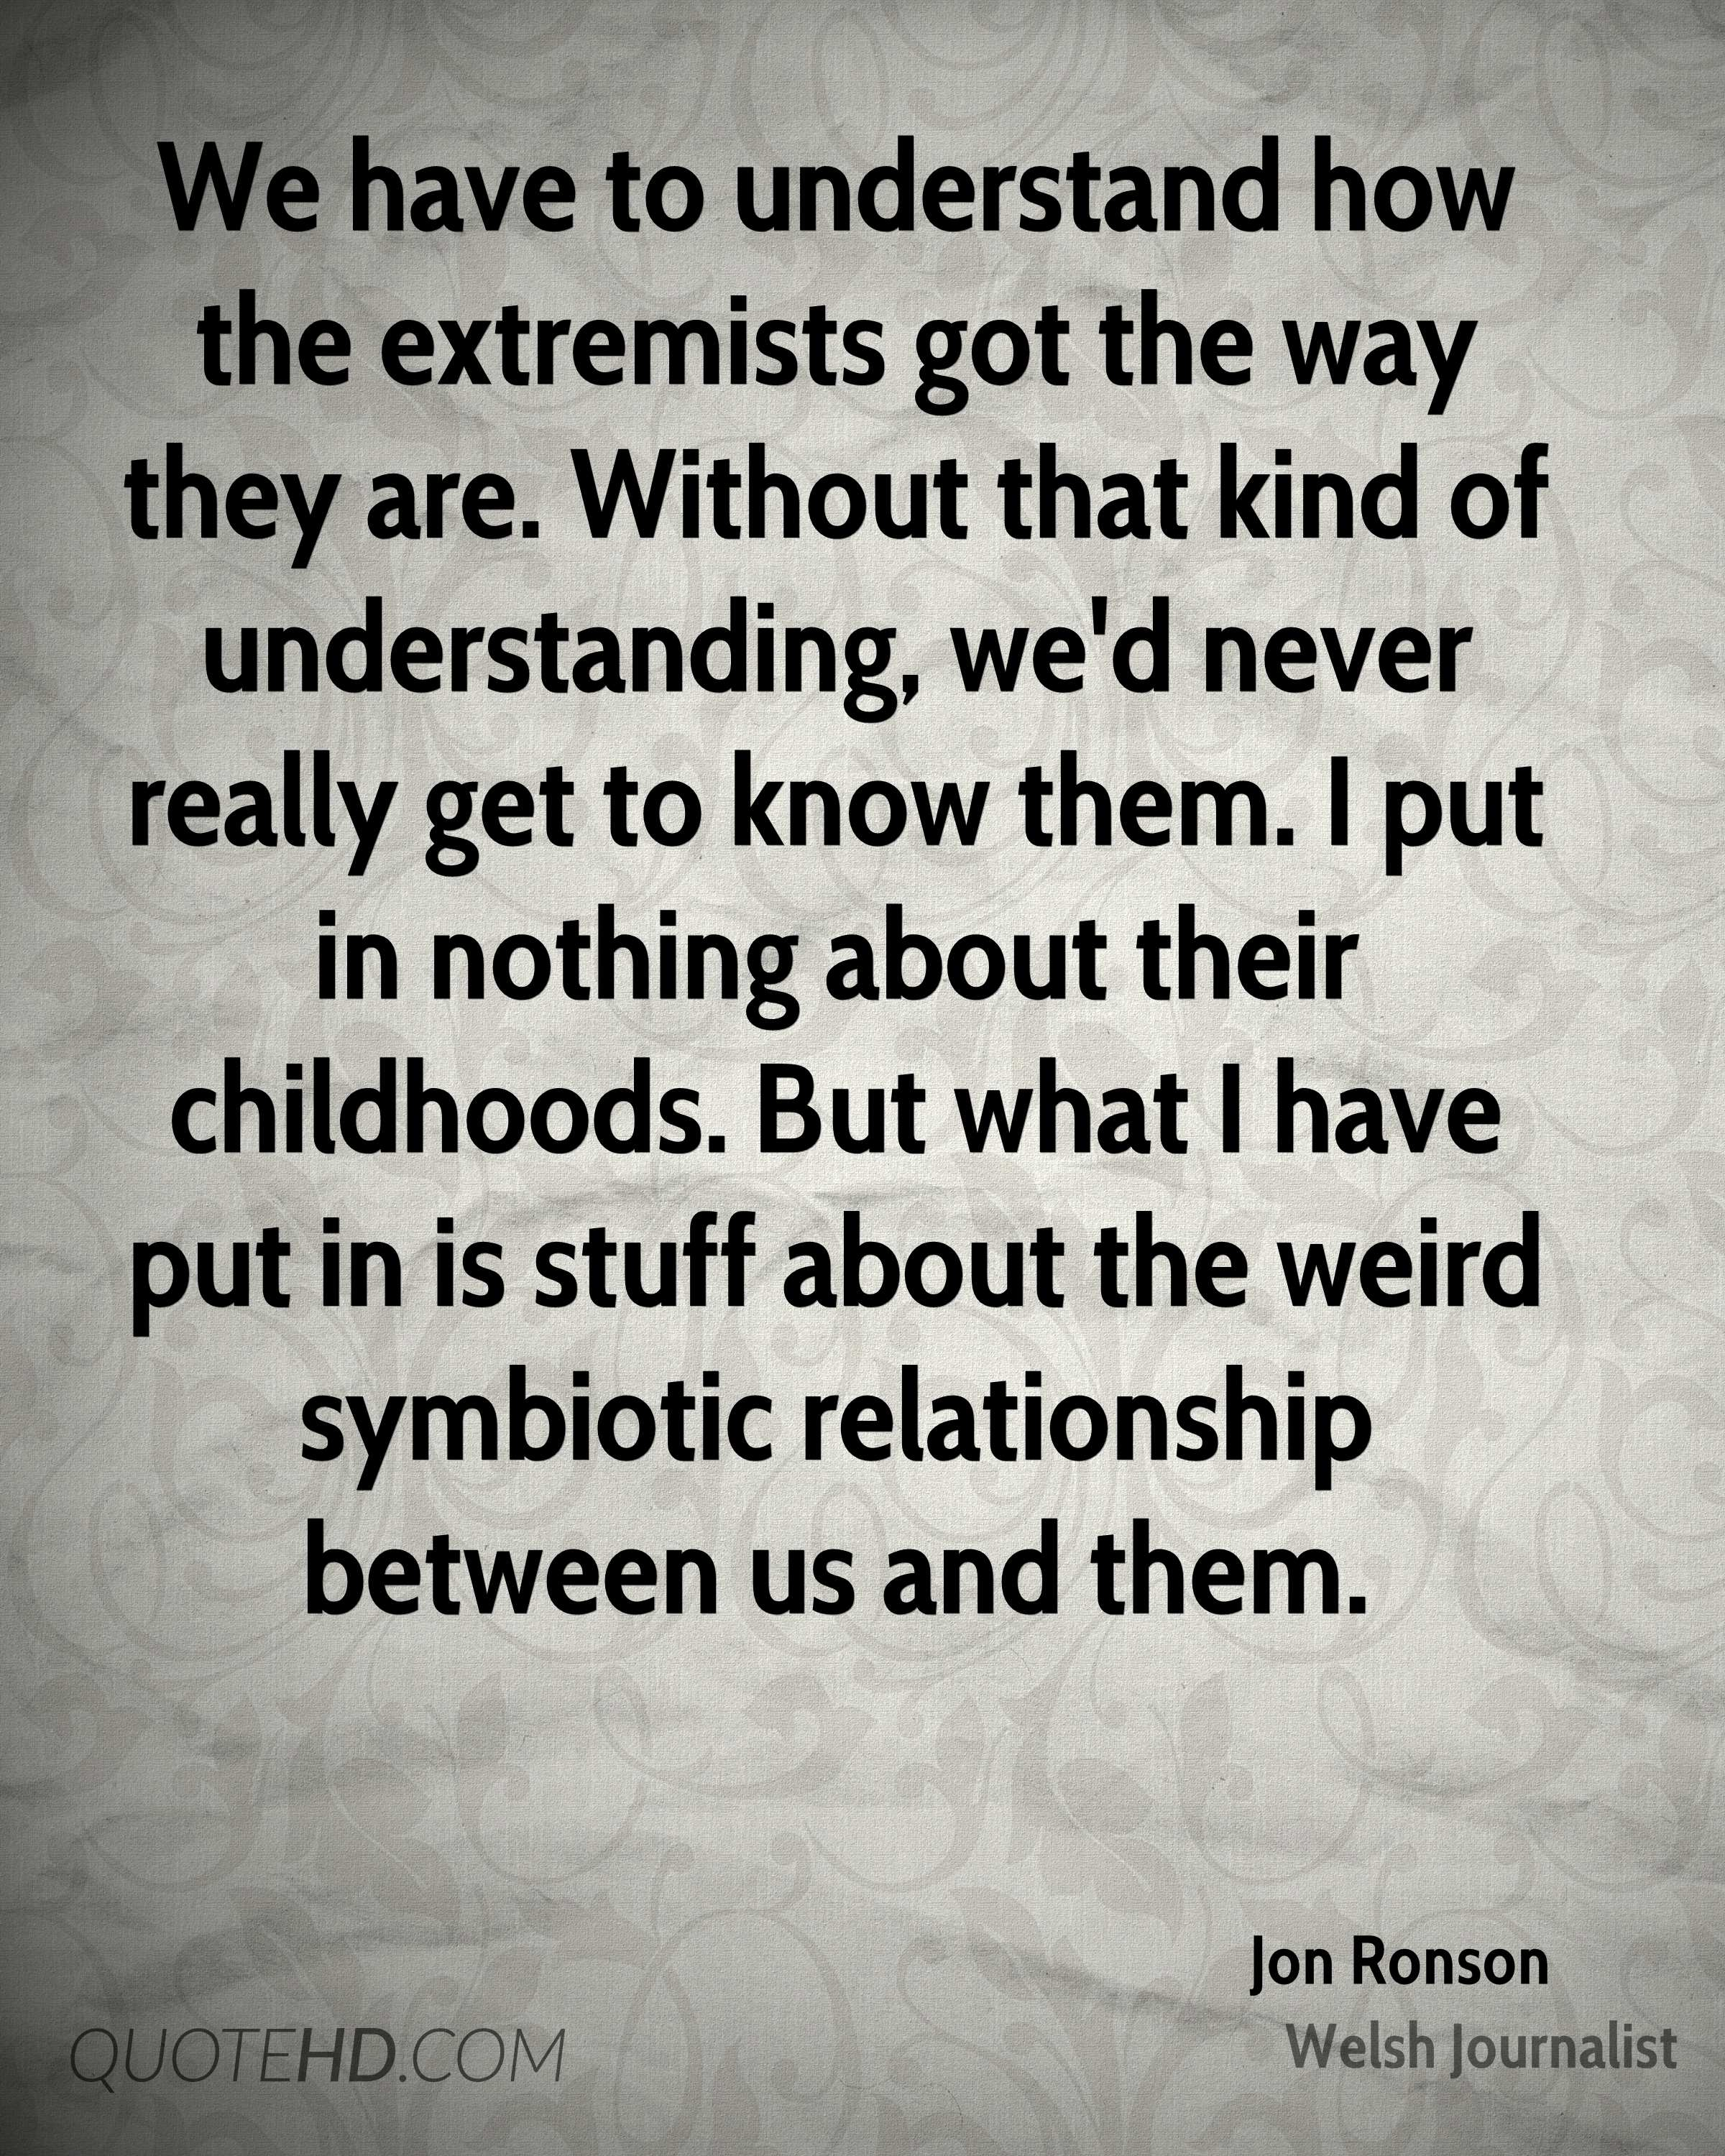 We have to understand how the extremists got the way they are. Without that kind of understanding, we'd never really get to know them. I put in nothing about their childhoods. But what I have put in is stuff about the weird symbiotic relationship between us and them.